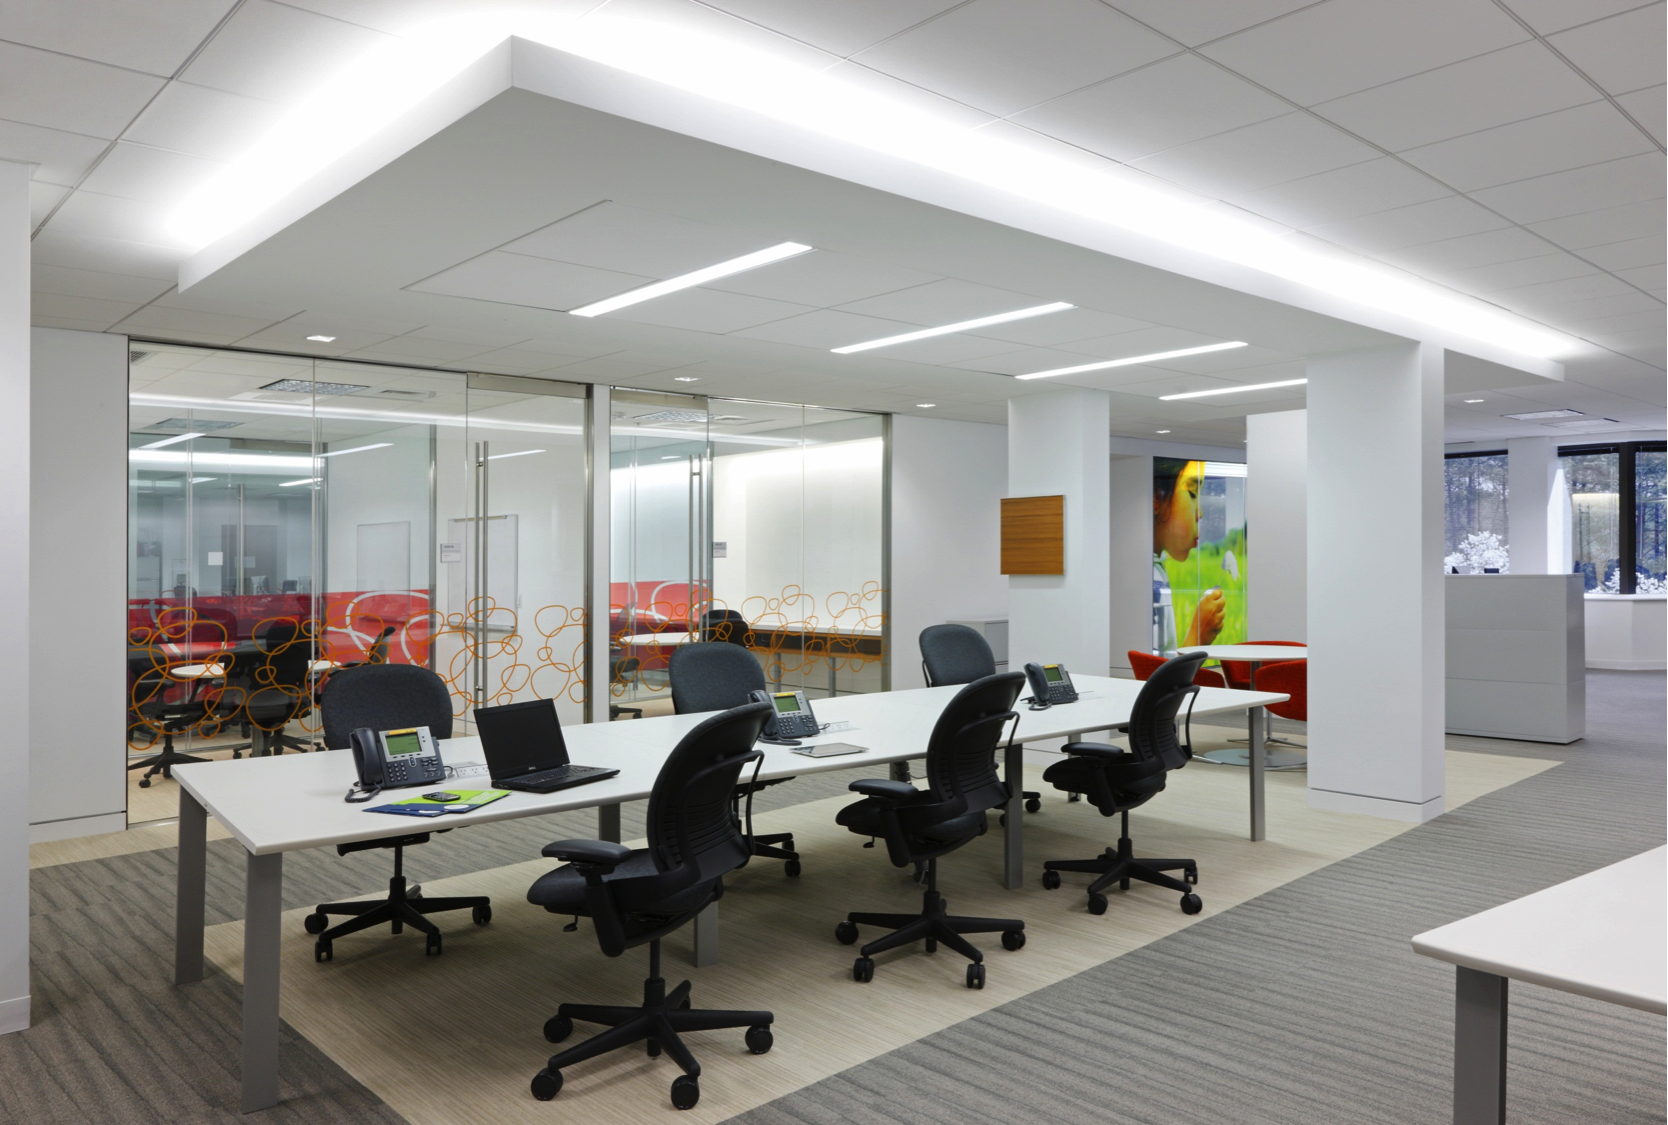 Work design talks dc designing for employee interaction for Office design concepts and needs